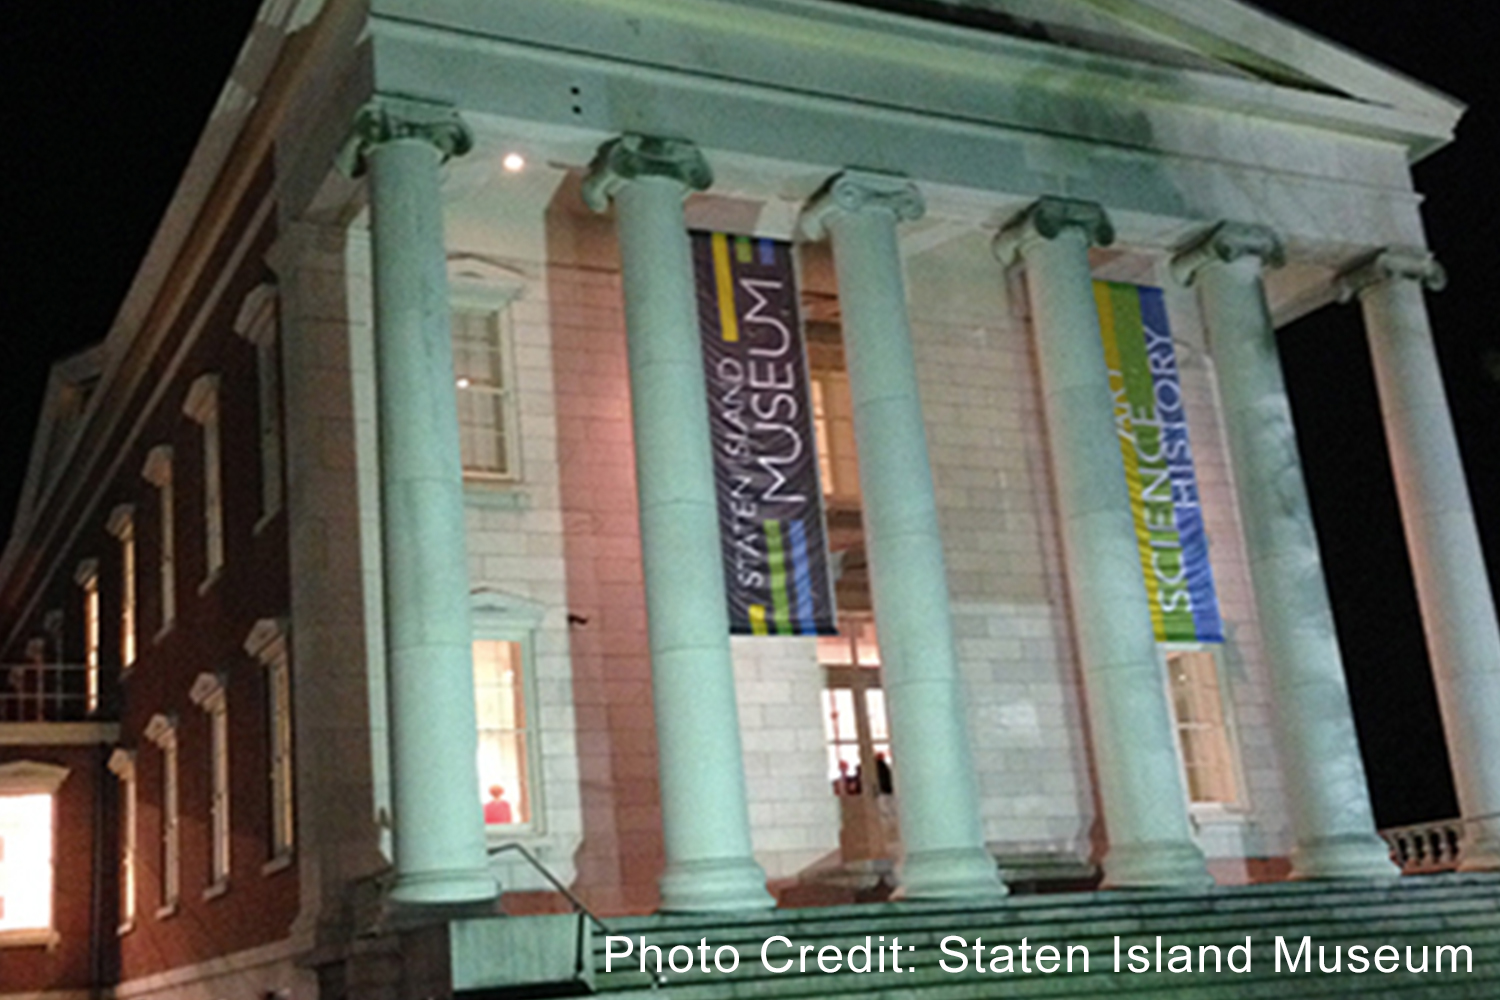 Staten Island Museum at Snug Harbor - Founded in 1881, the Staten Island Museum is the oldest cultural institution in the borough. Its natural sciences, fine arts, and historical collections offer a unique experience.1000 Richmond Terrace, Building A, SI, NY 10301statenislandmuseum.org